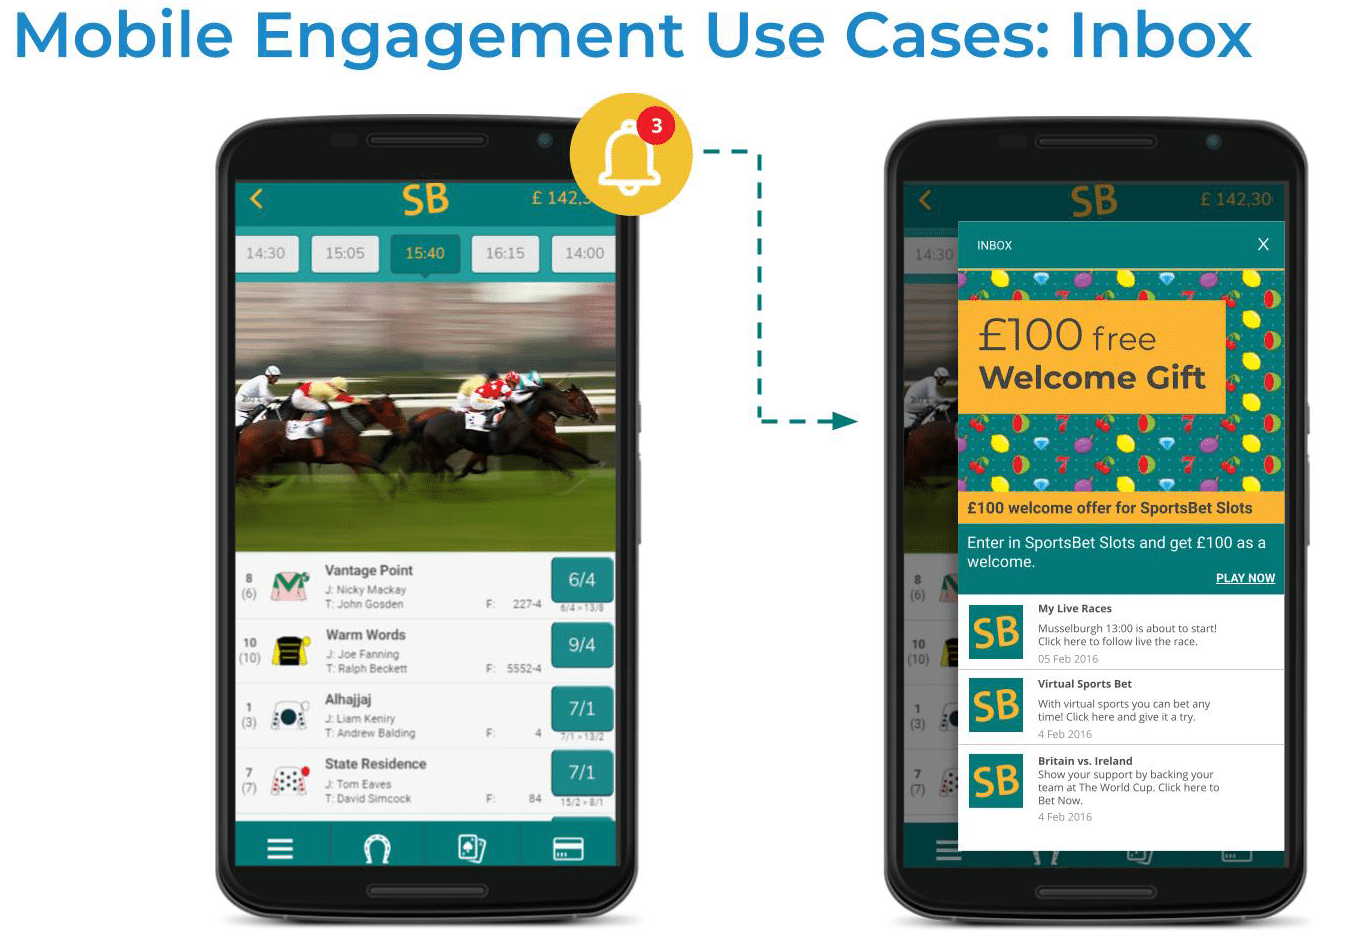 Using the web and app inbox to engage with mobile players